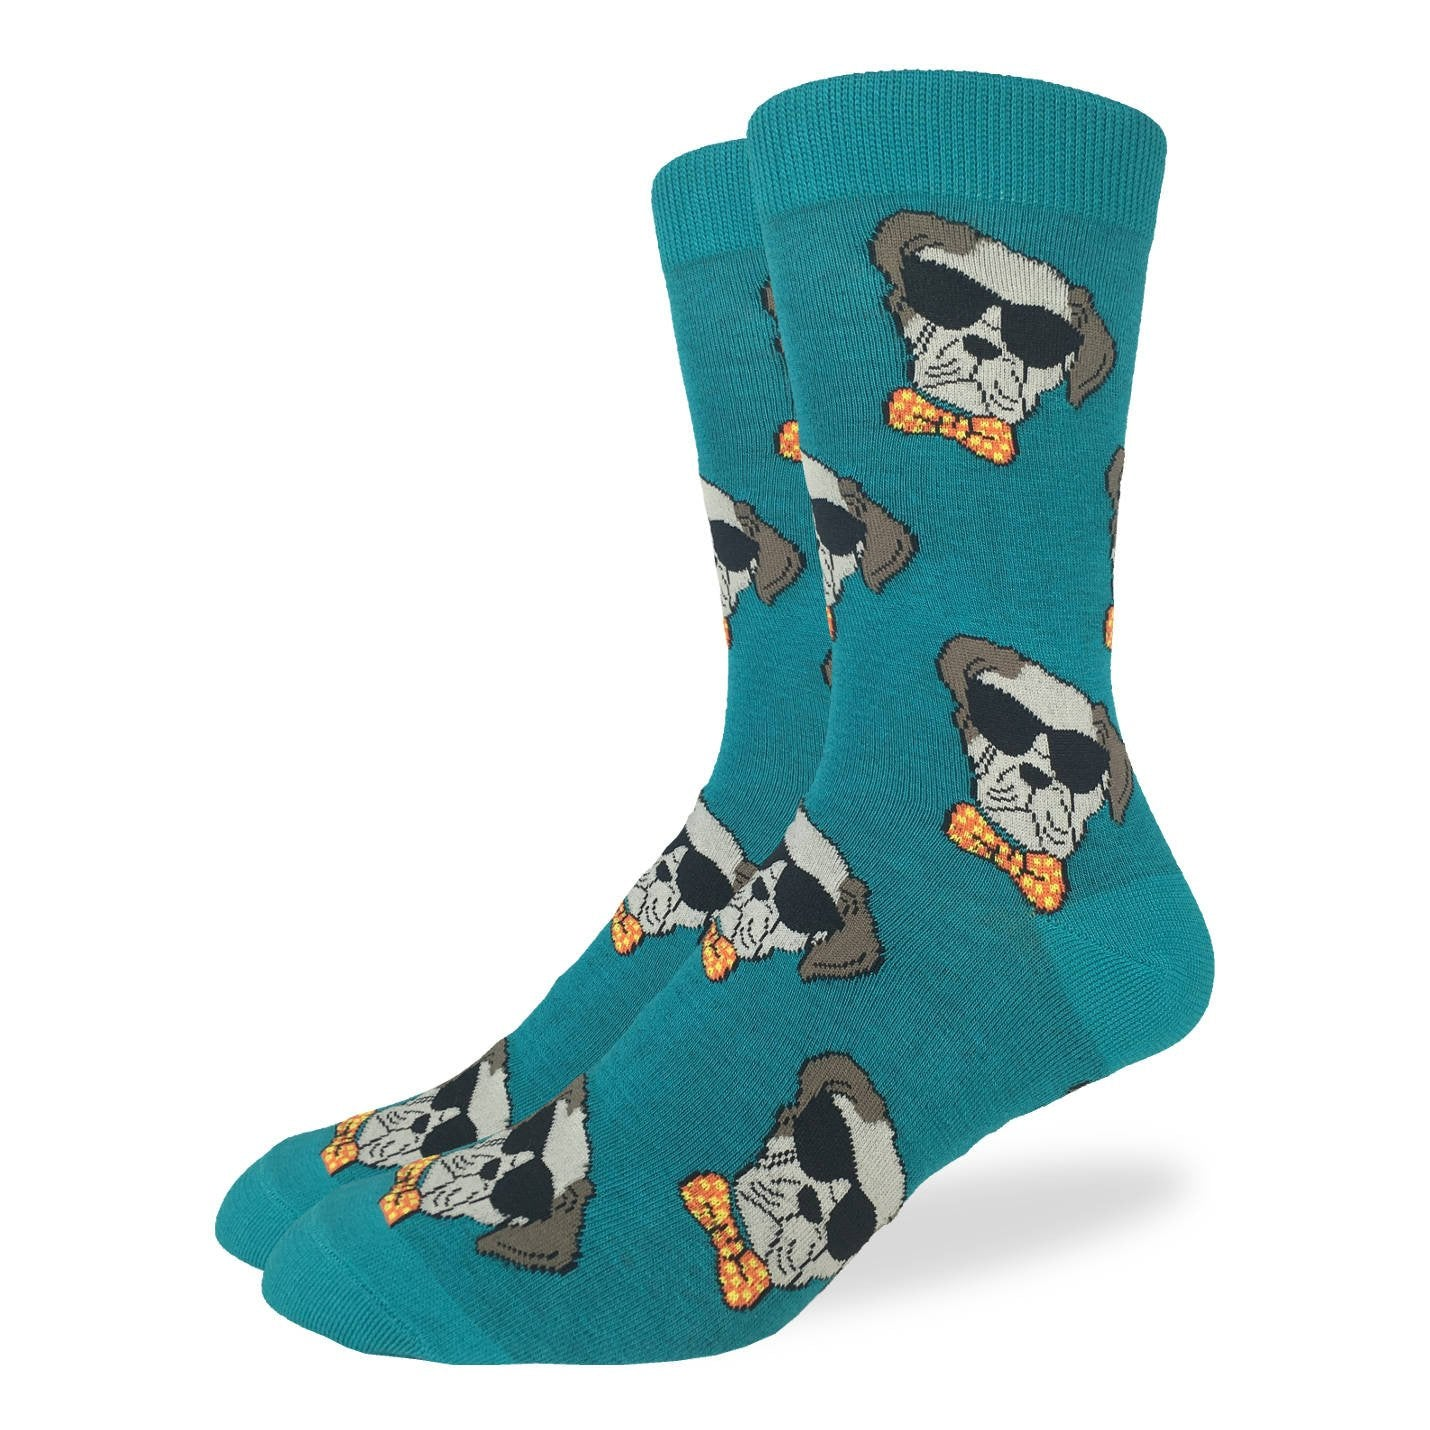 Men's Dapper Dog Socks - Good Luck Sock